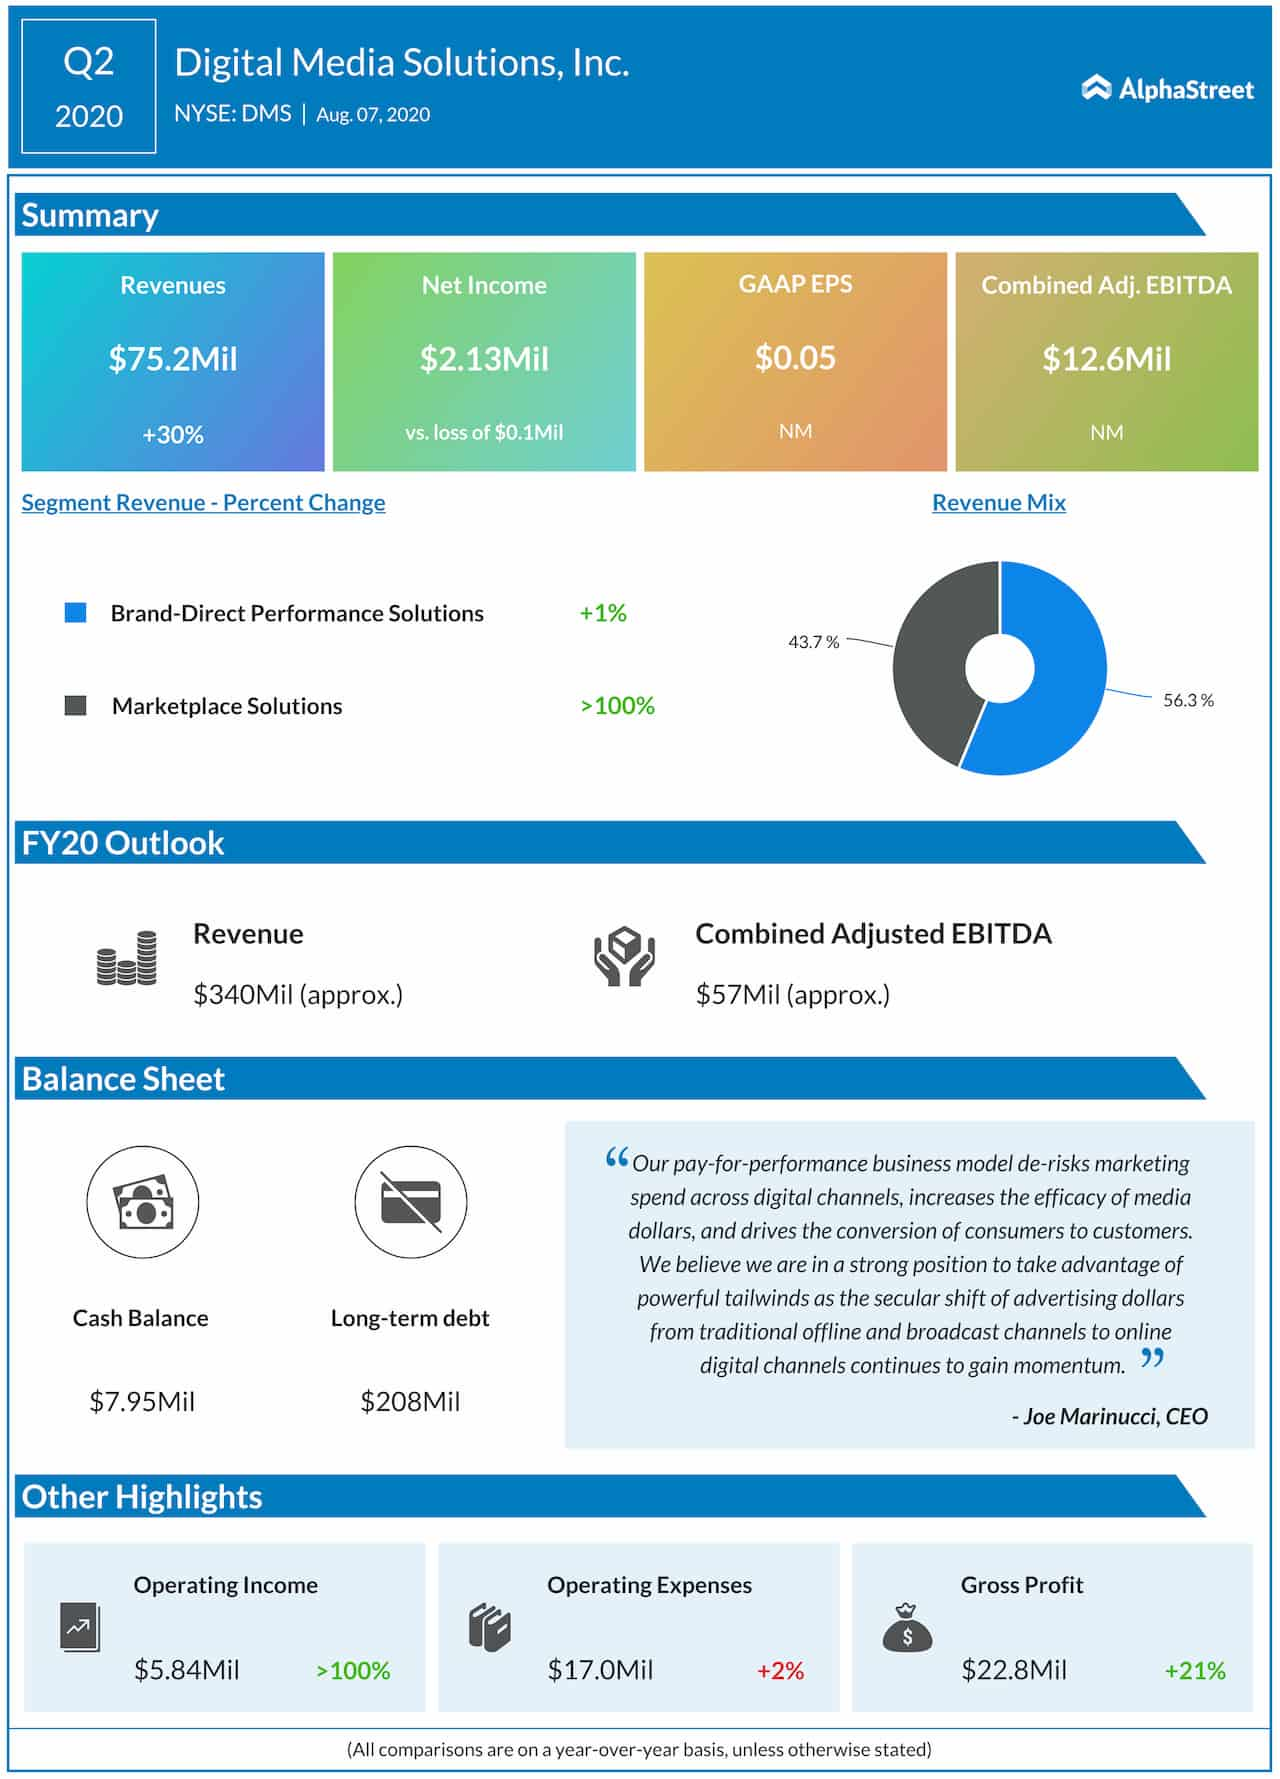 Digital Media Solutions Q2 2020 Earnings Infographic